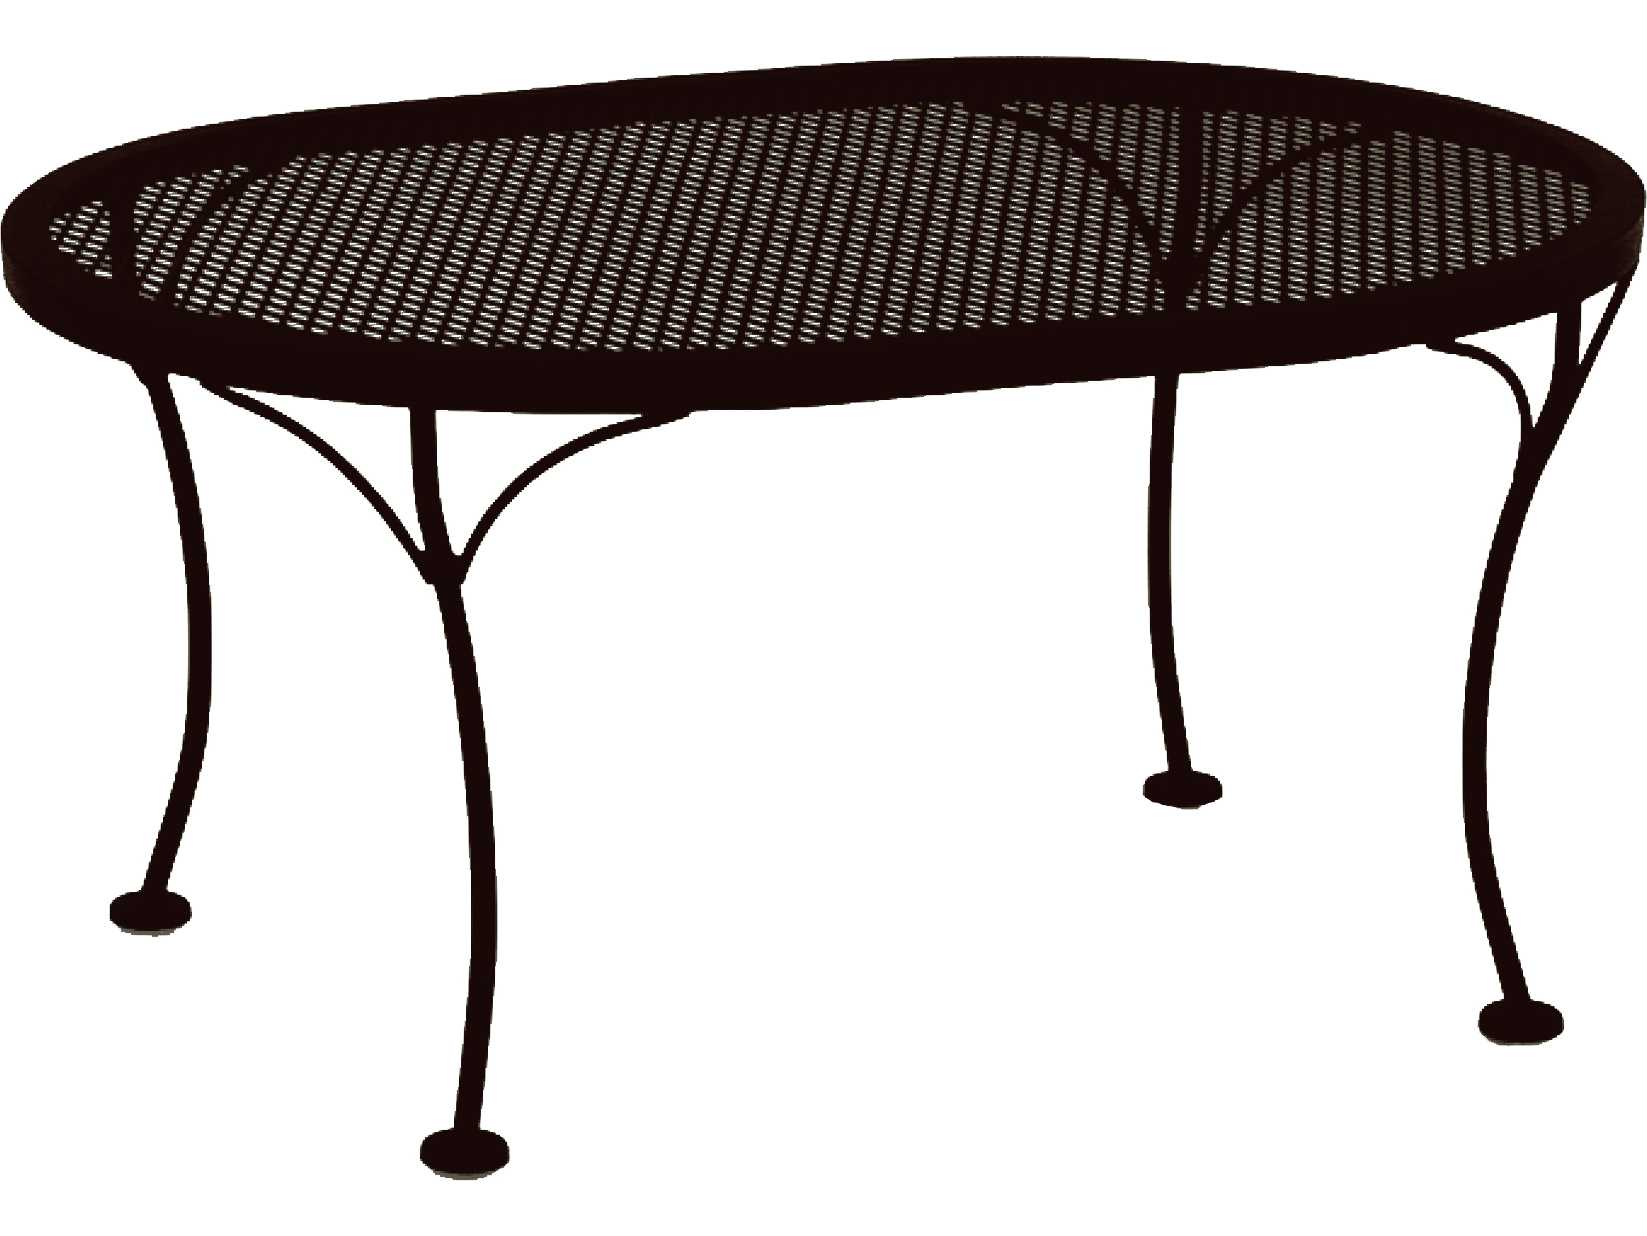 Ow lee mesh wrought iron 34 x 24 oval coffee table ow2434ovmot Wrought iron coffee tables